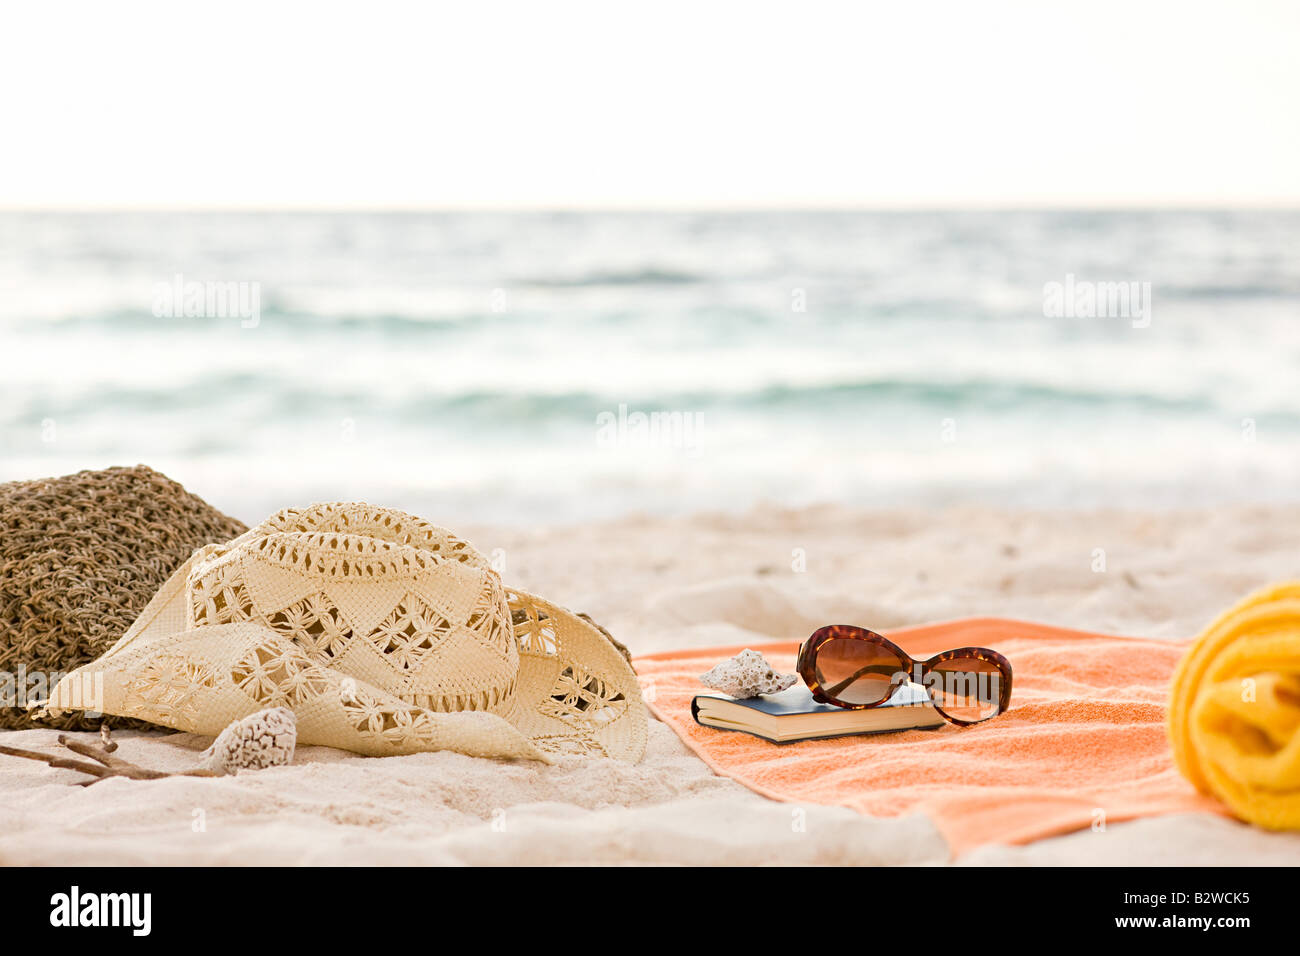 Items on a beach - Stock Image